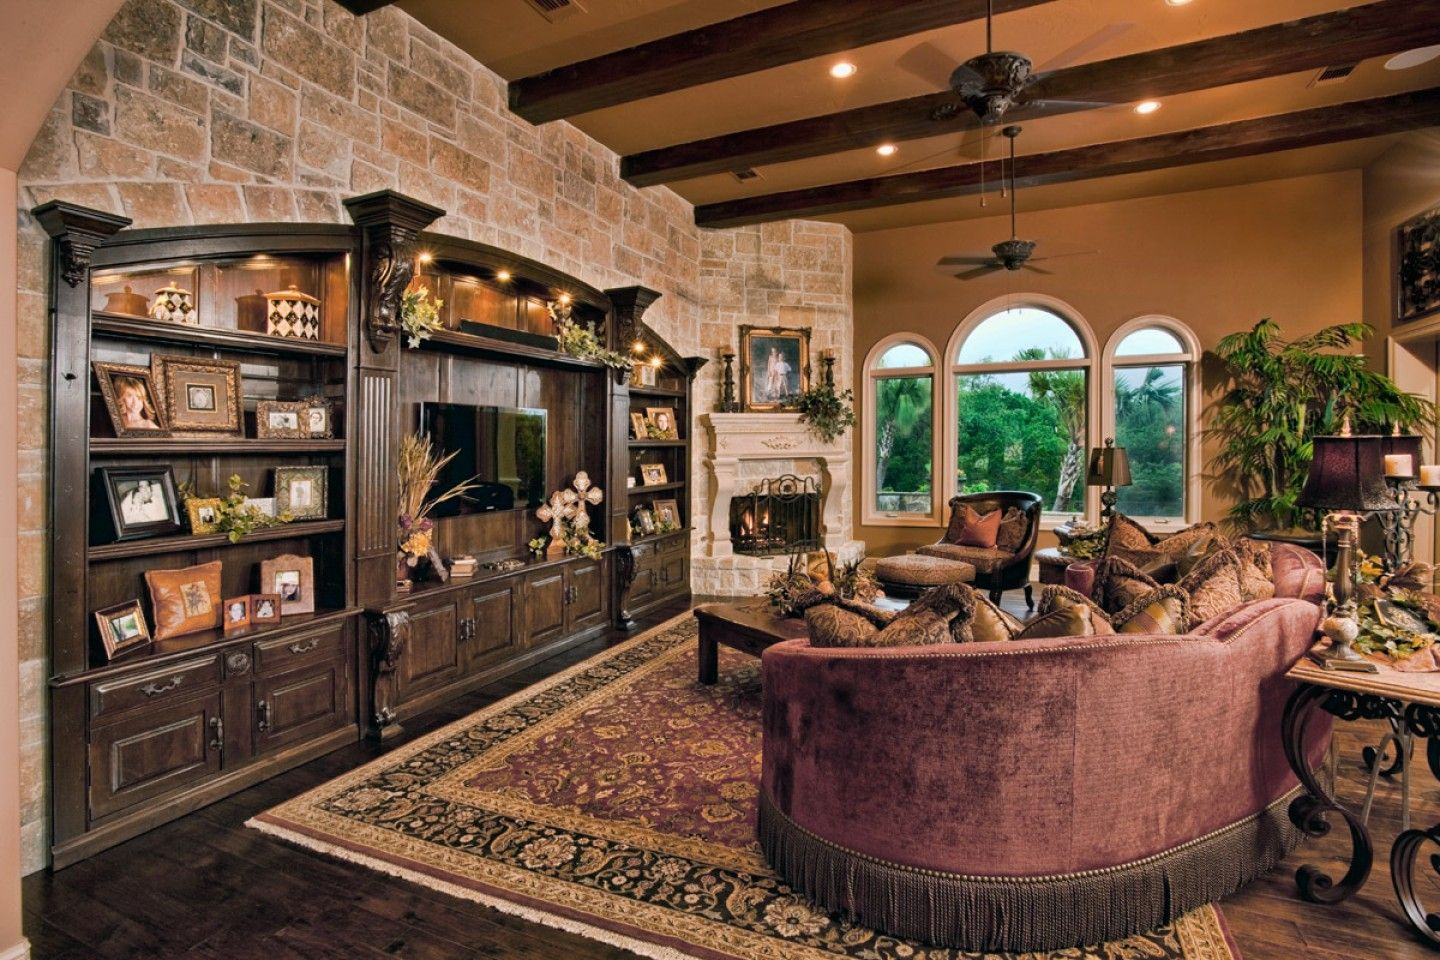 10+ Amazing Western Themed Living Room